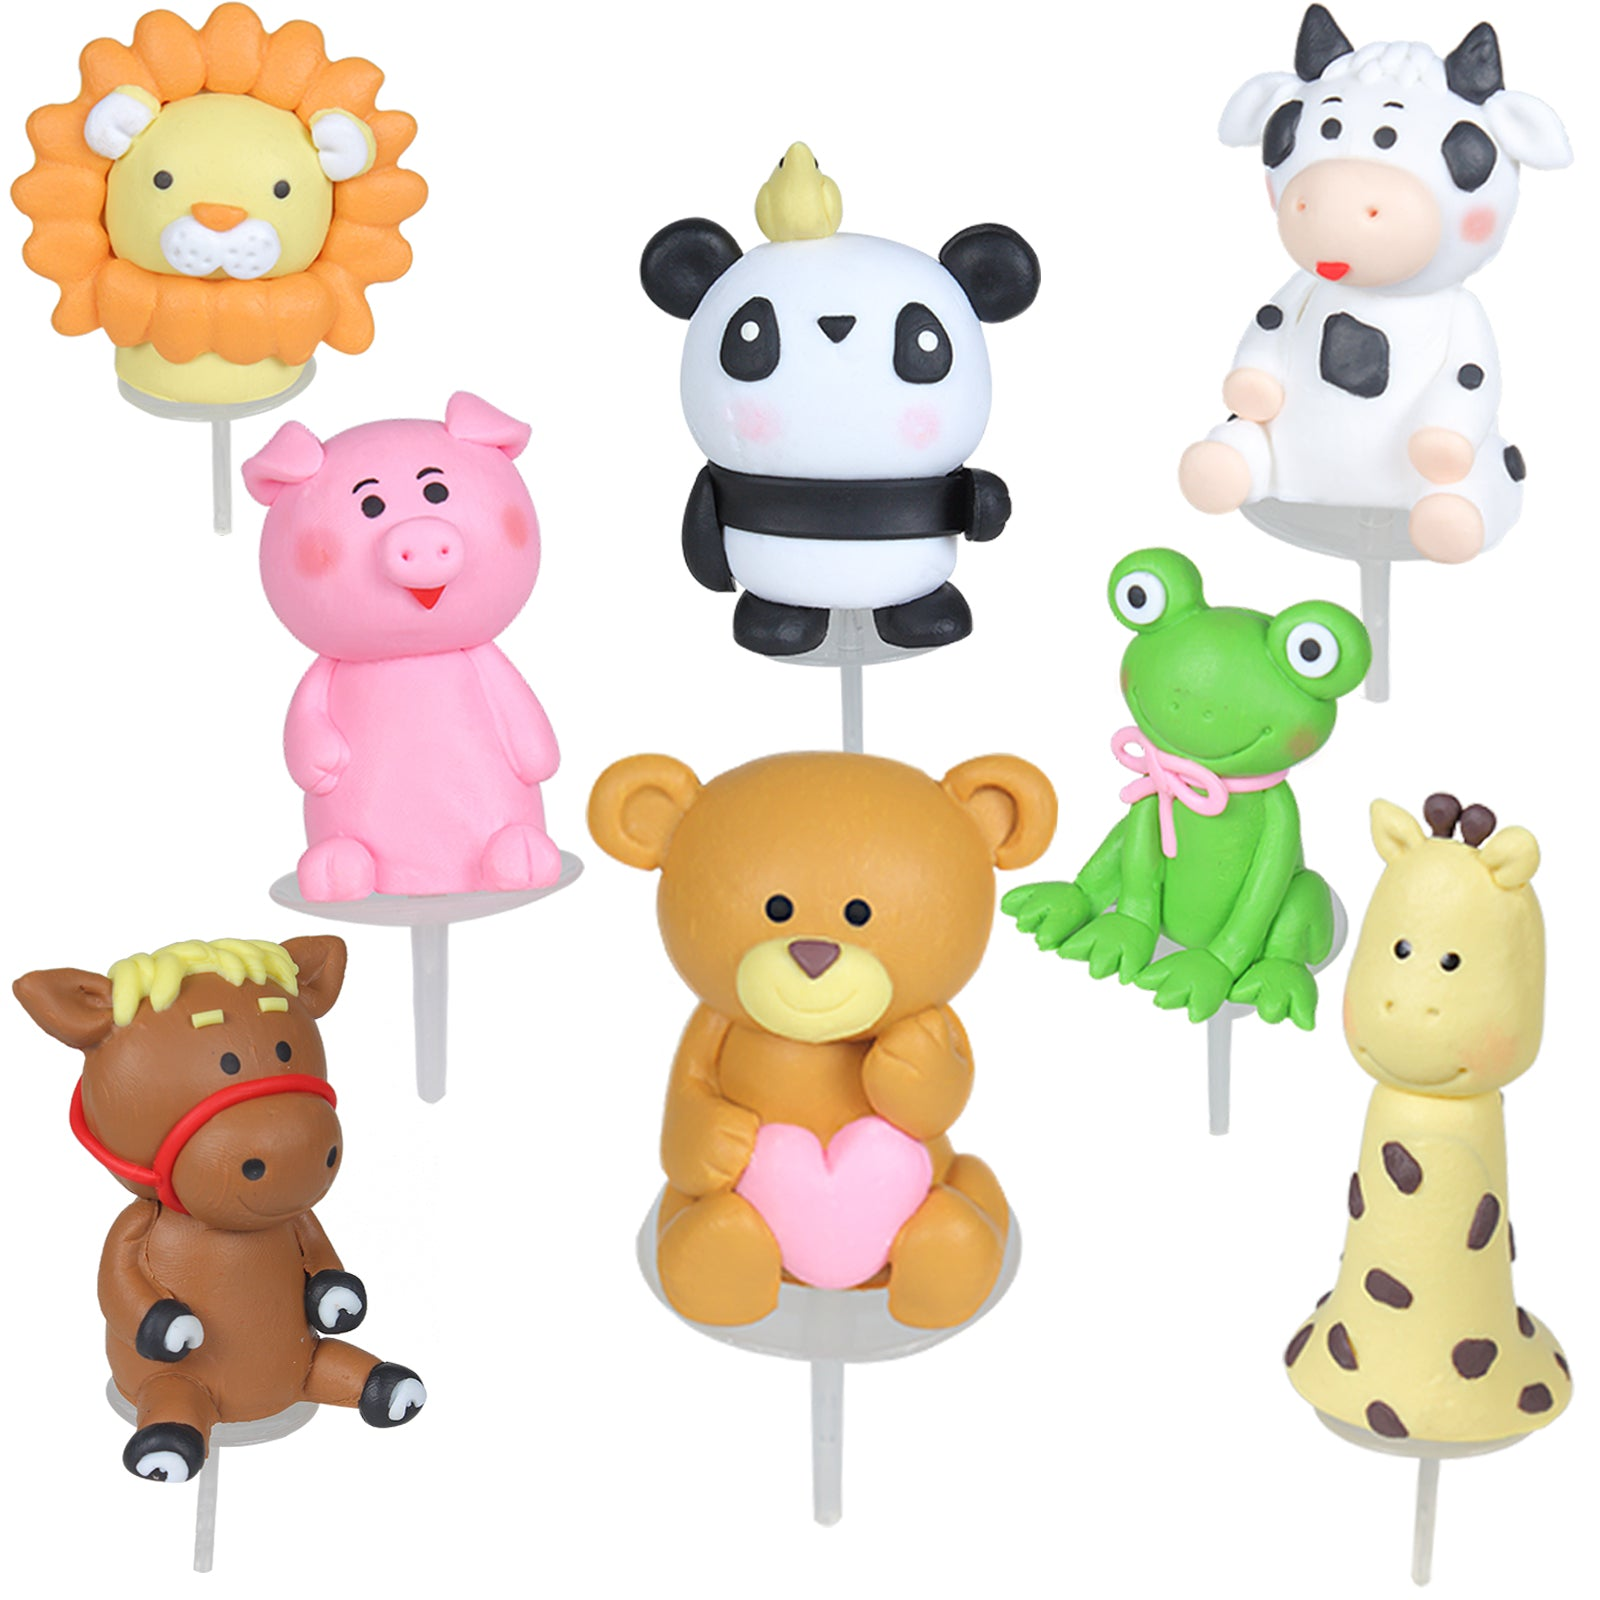 Farm and Zoo Animal Cake Toppers Set 8-Count 1.7-2.7inch